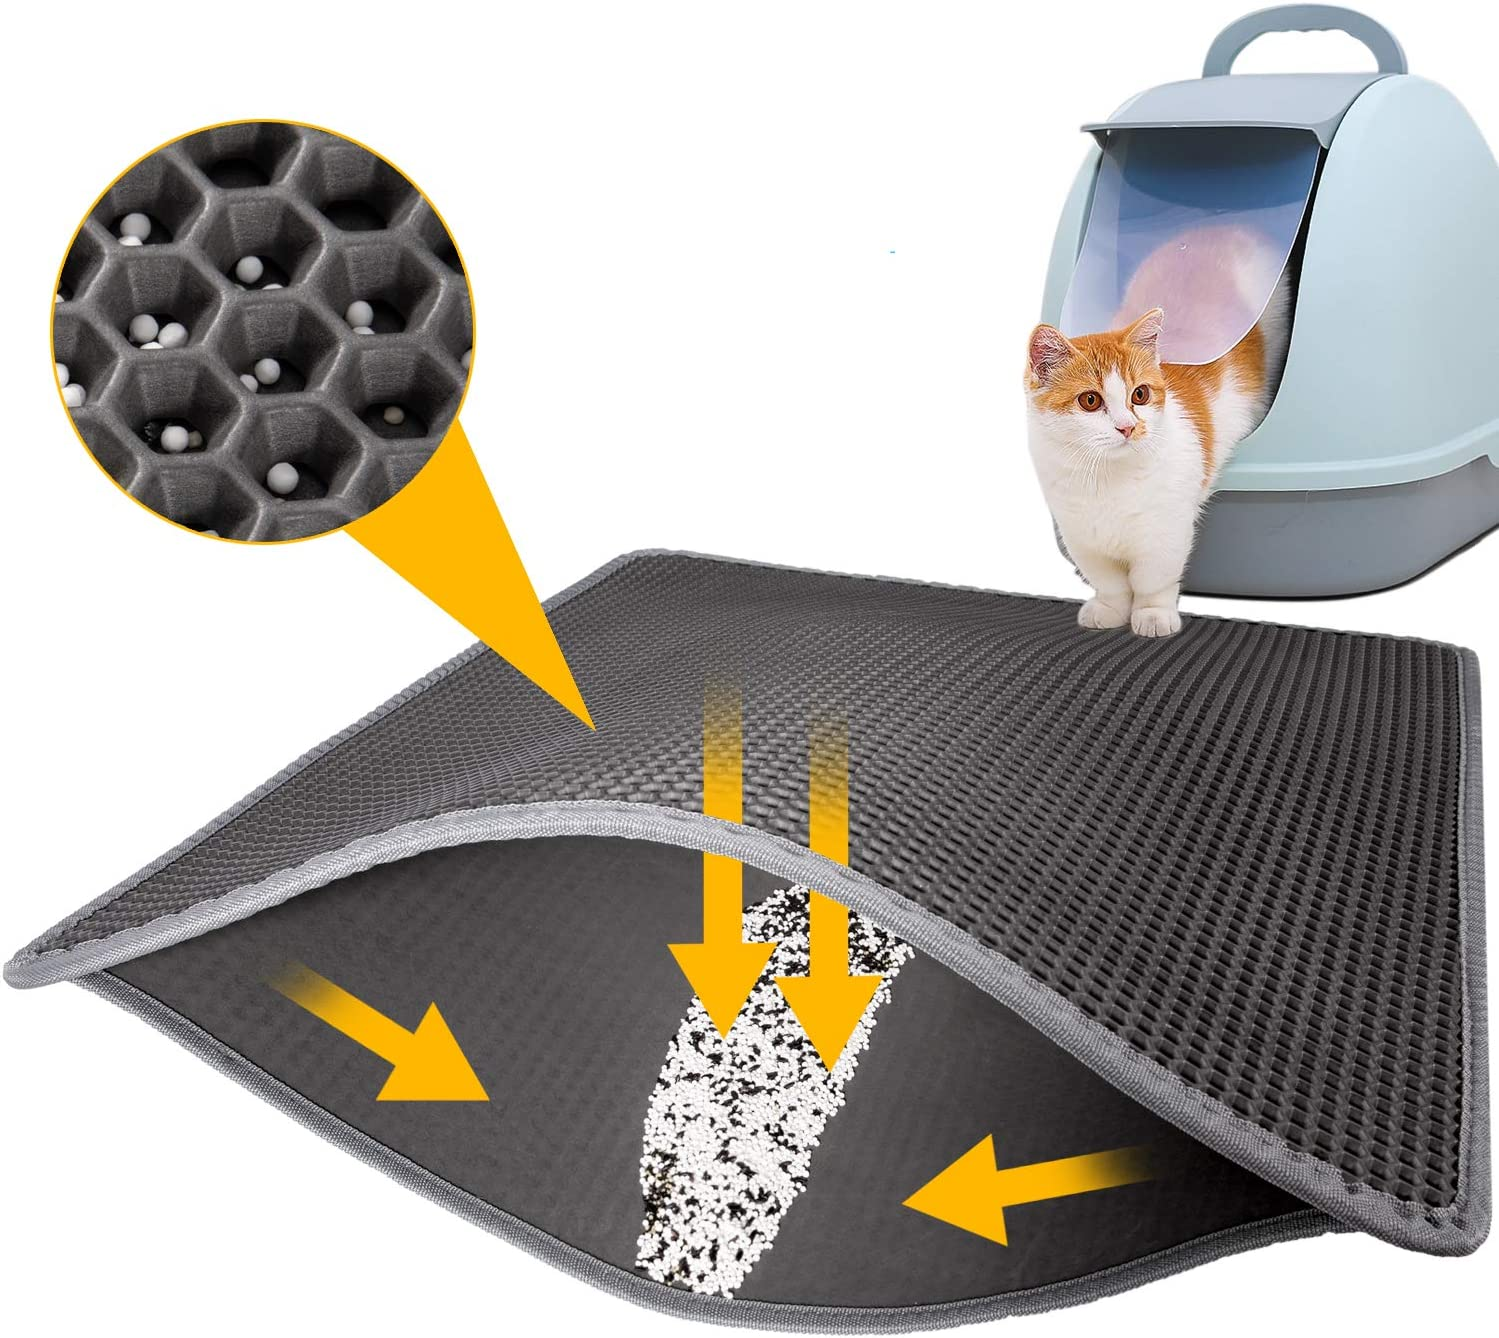 LeToo Cat Litter Mat Trapping Box Super No-Toxic 5 ☆ popular Japan's largest assortment S for